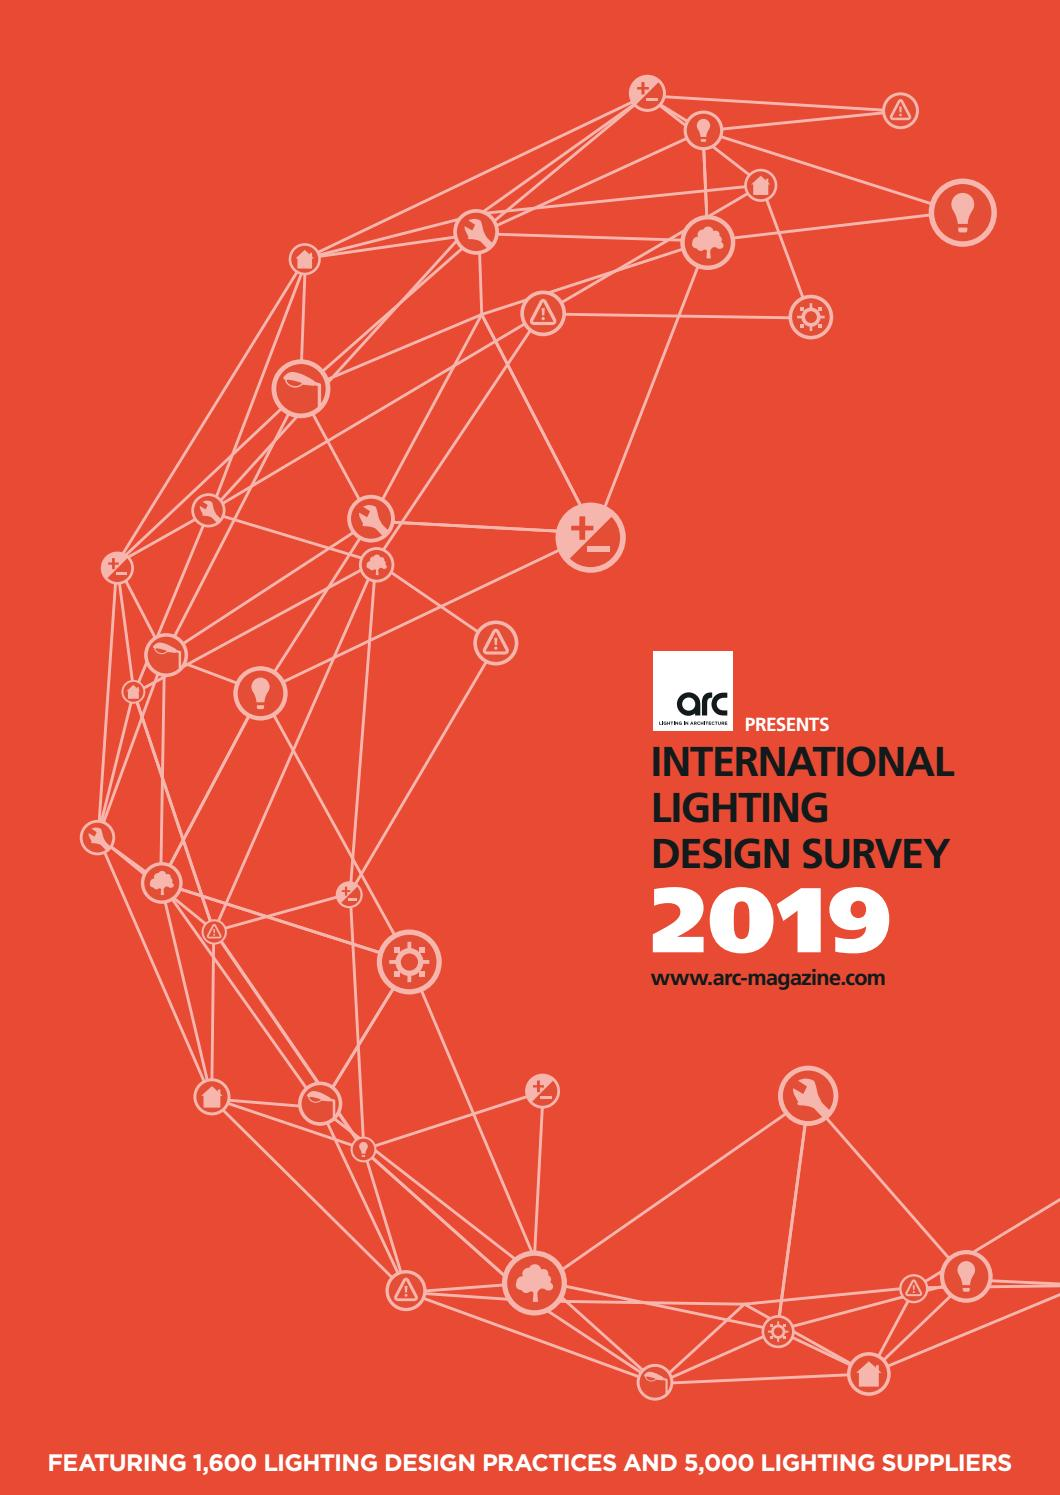 ILDS 2019 by Mondiale Media - issuu